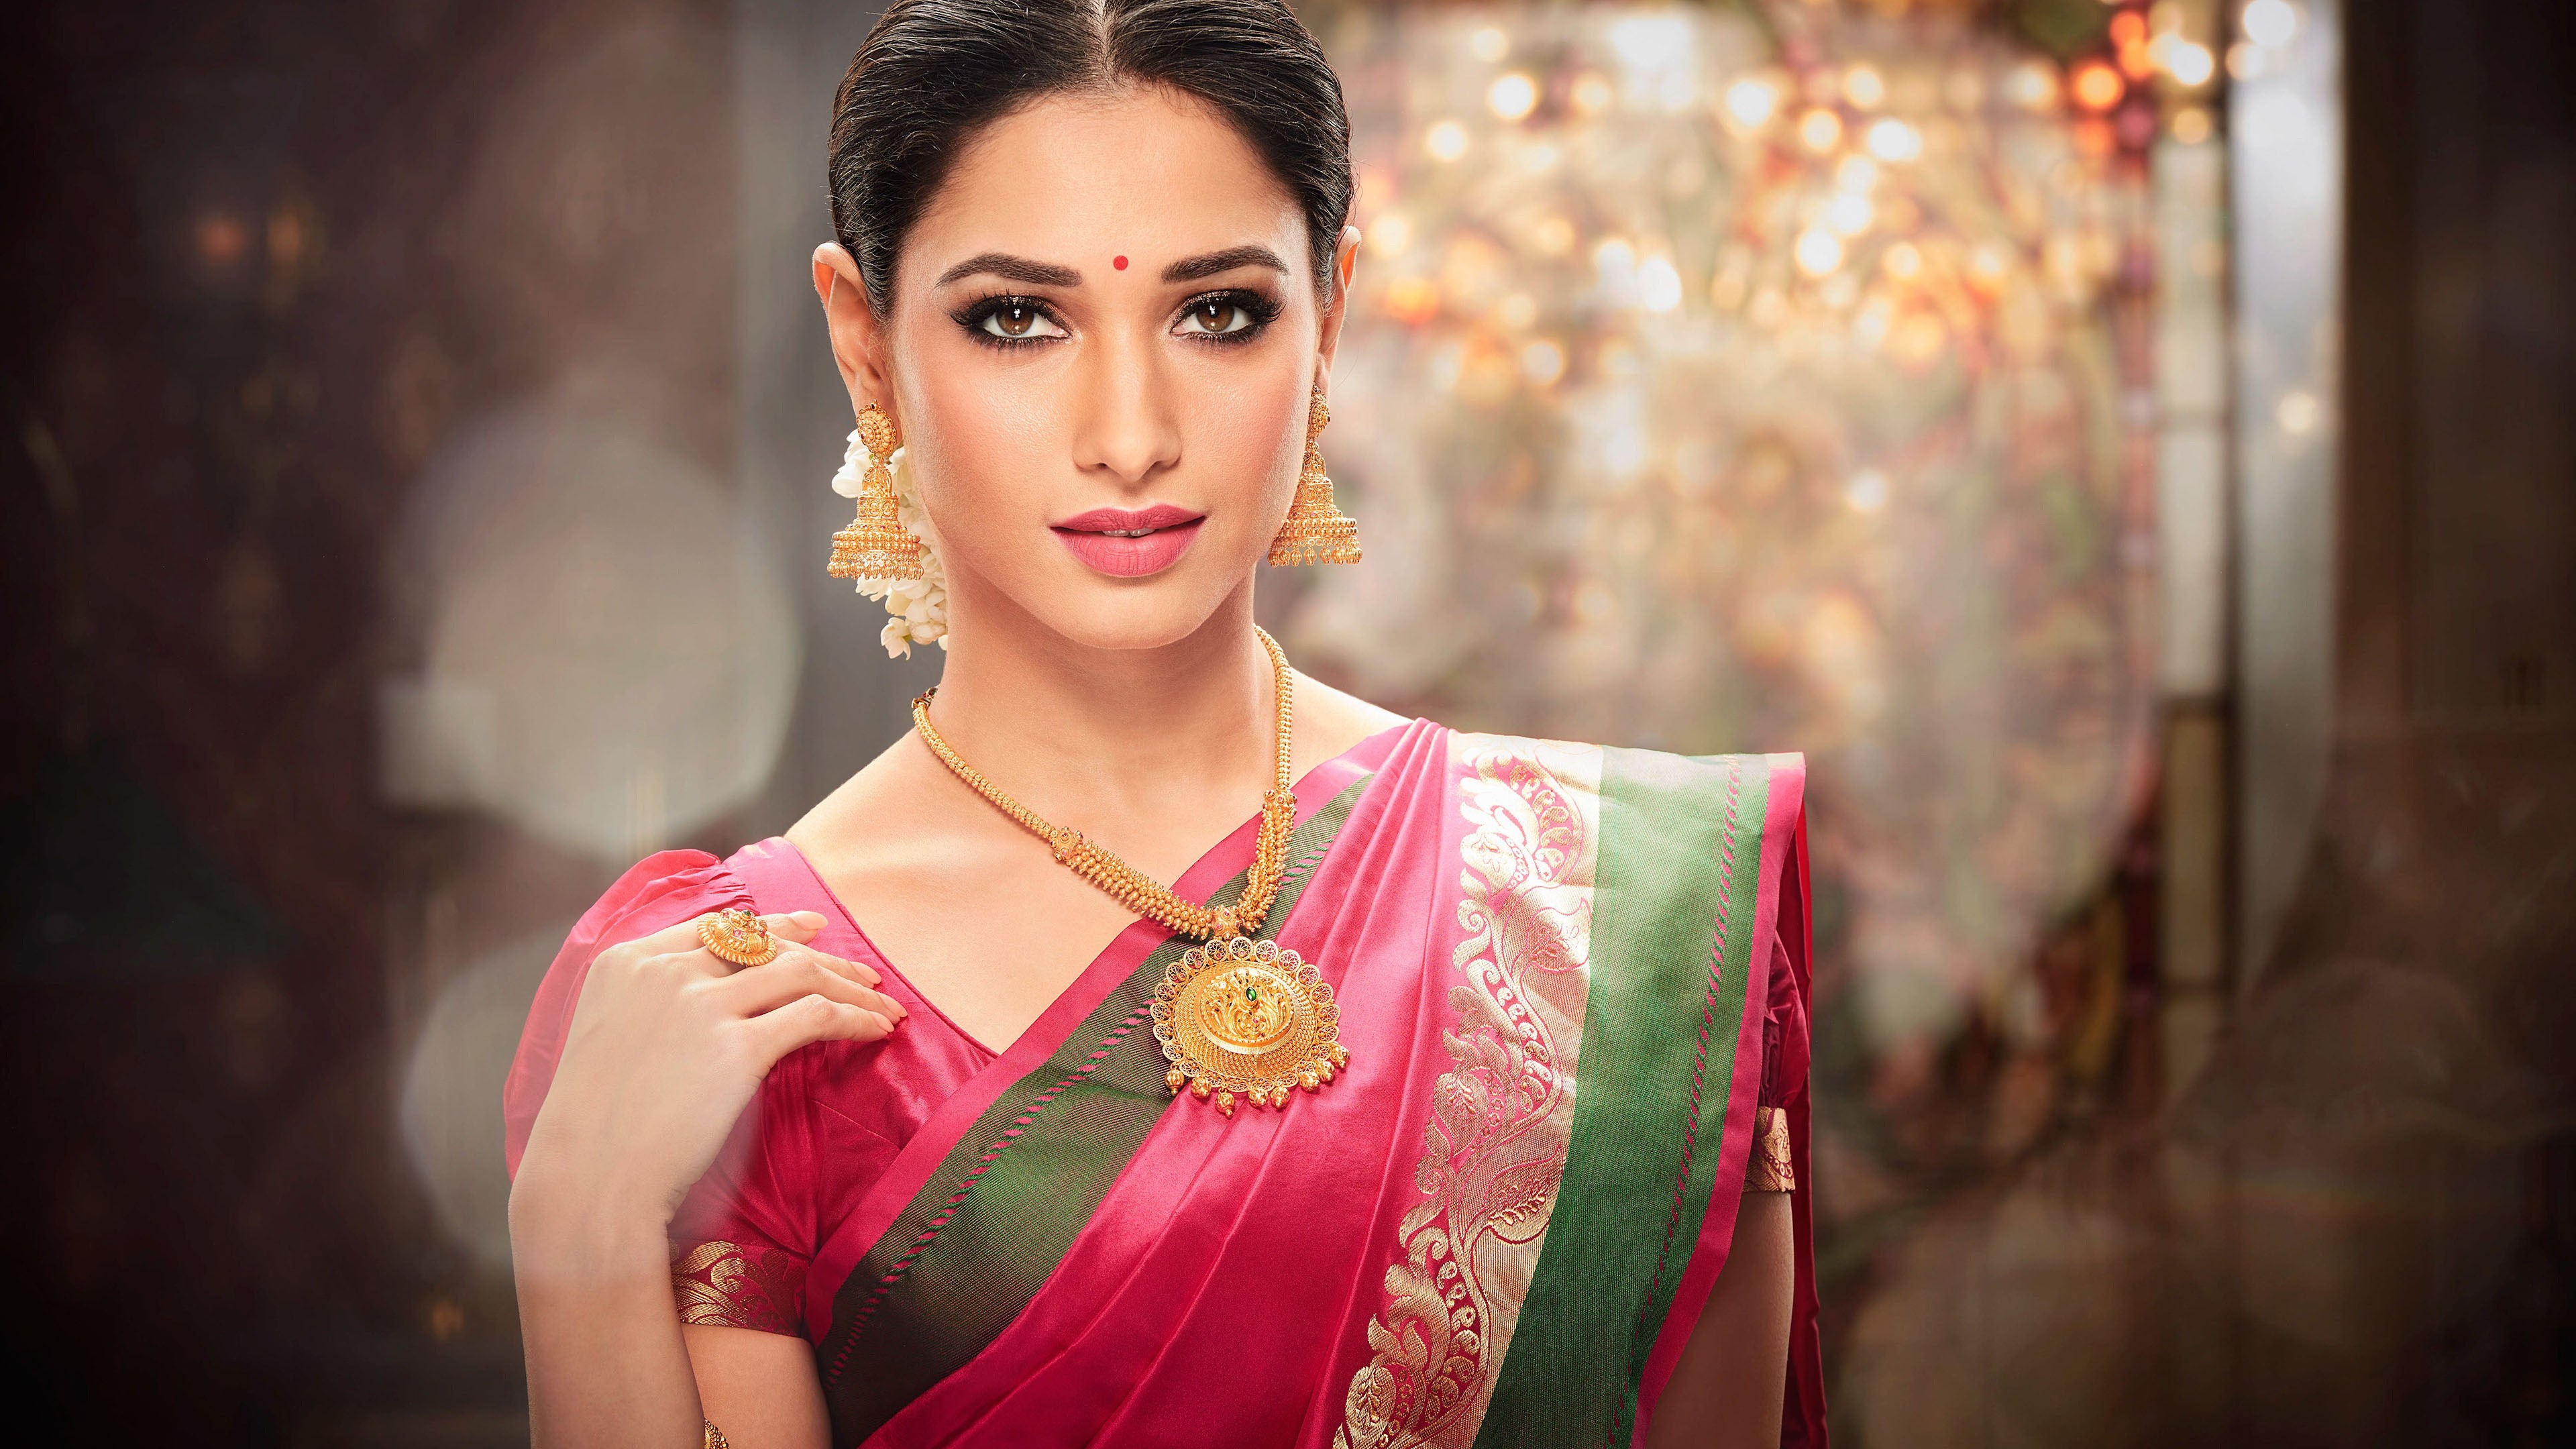 Wallpapers Tamannaah, Ethnic wear, Traditional, Saree, South Indian, 4K, Celebrities / Most Popular,